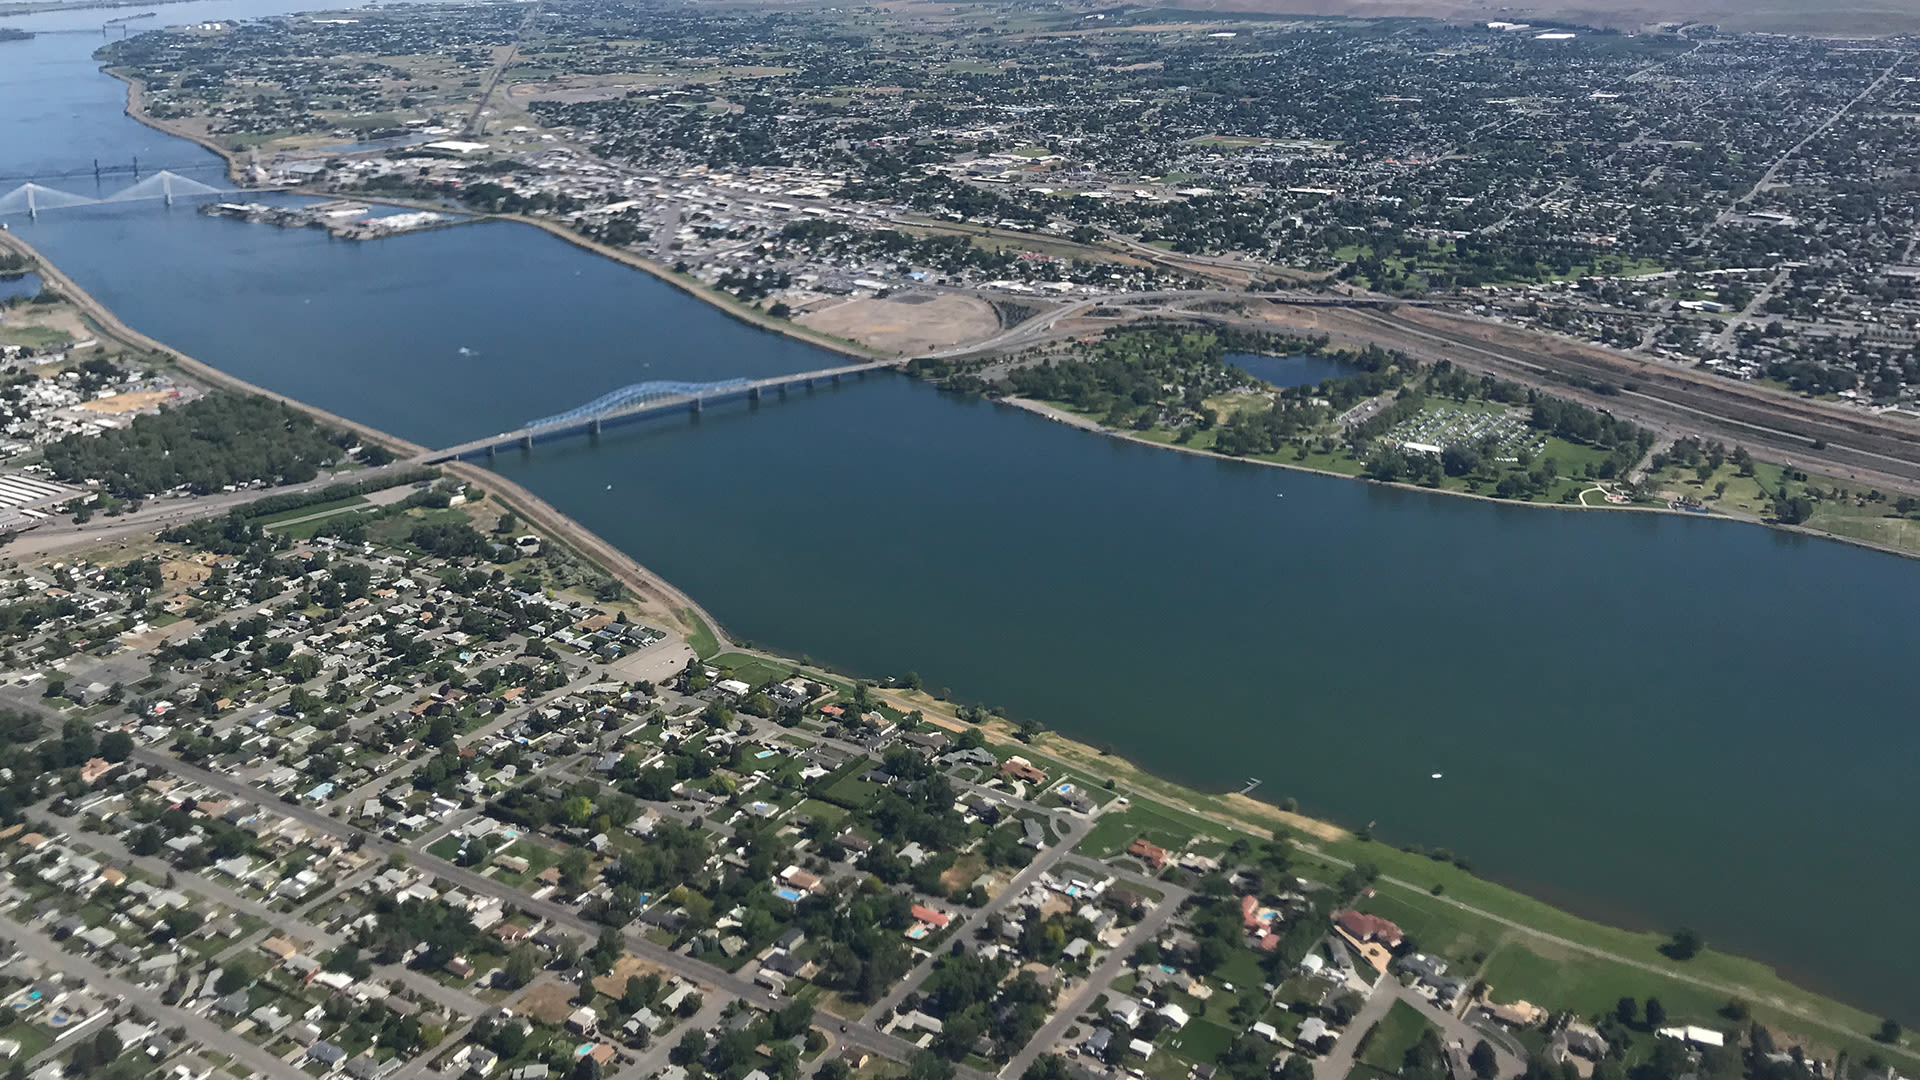 Tri-Cities: Fastest Growing Real Estate Market in Washington